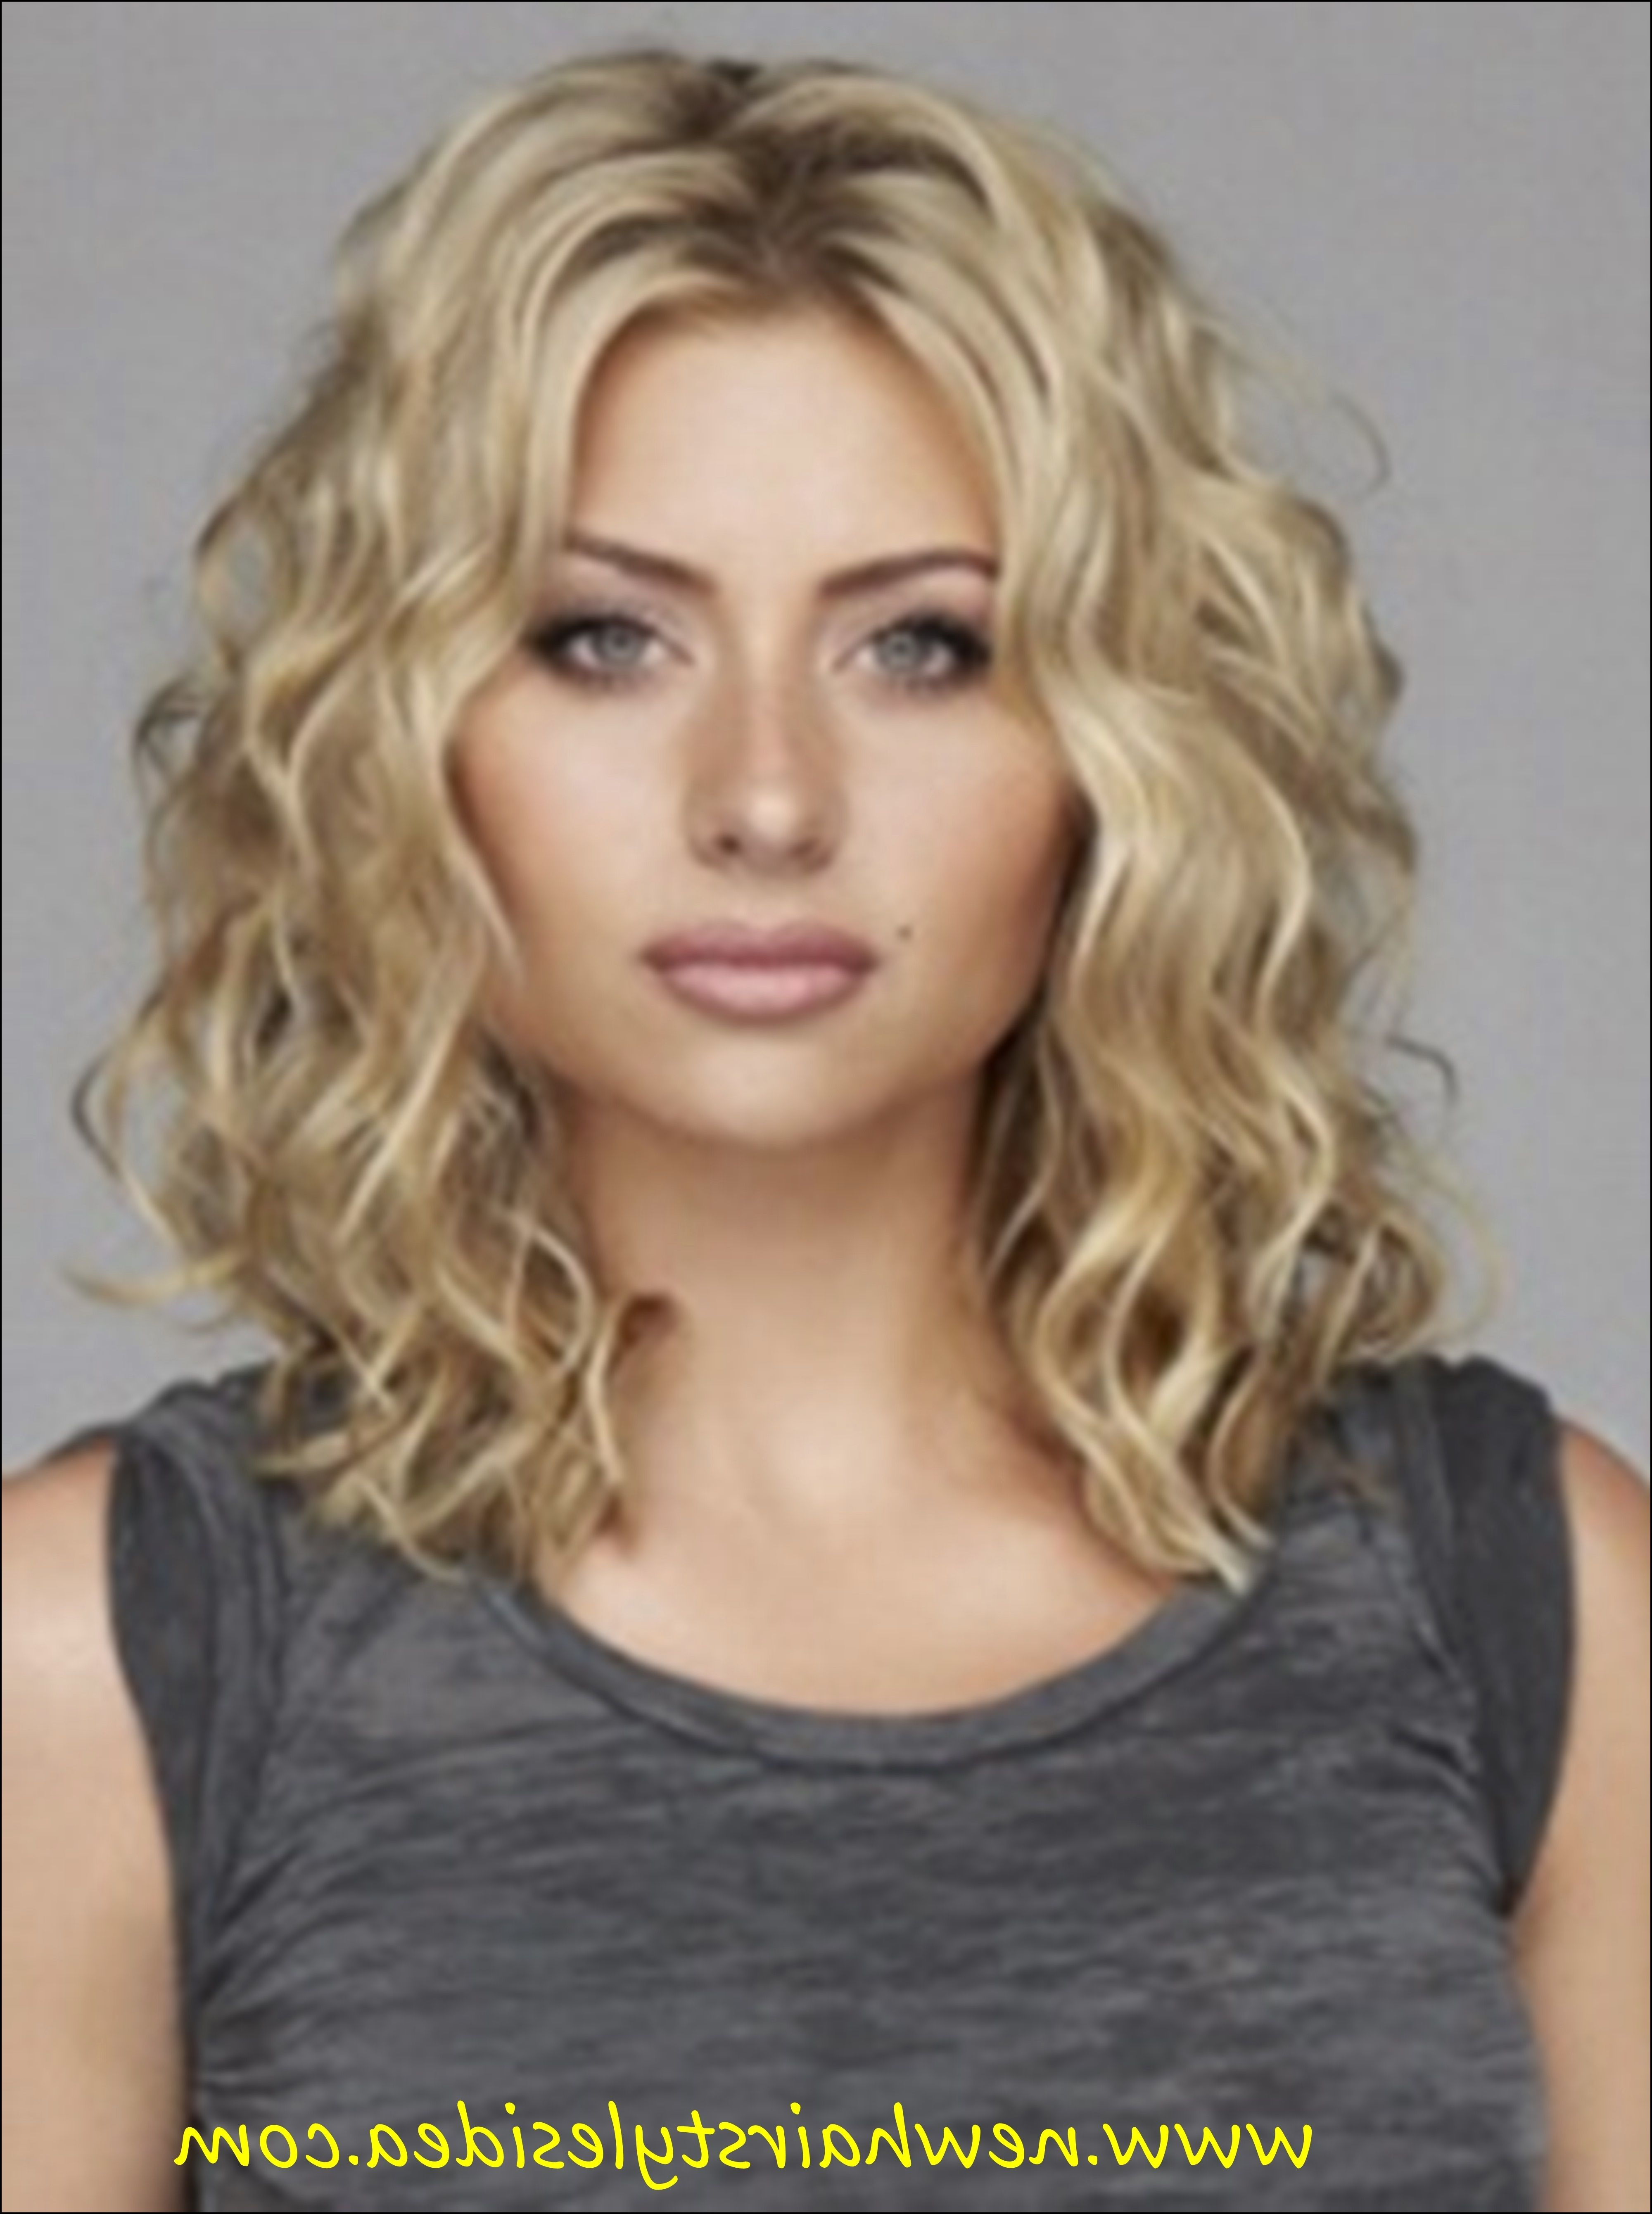 Curly Blonde Hairstyles Blonde Curly Hairstyles New Hairstyles ...